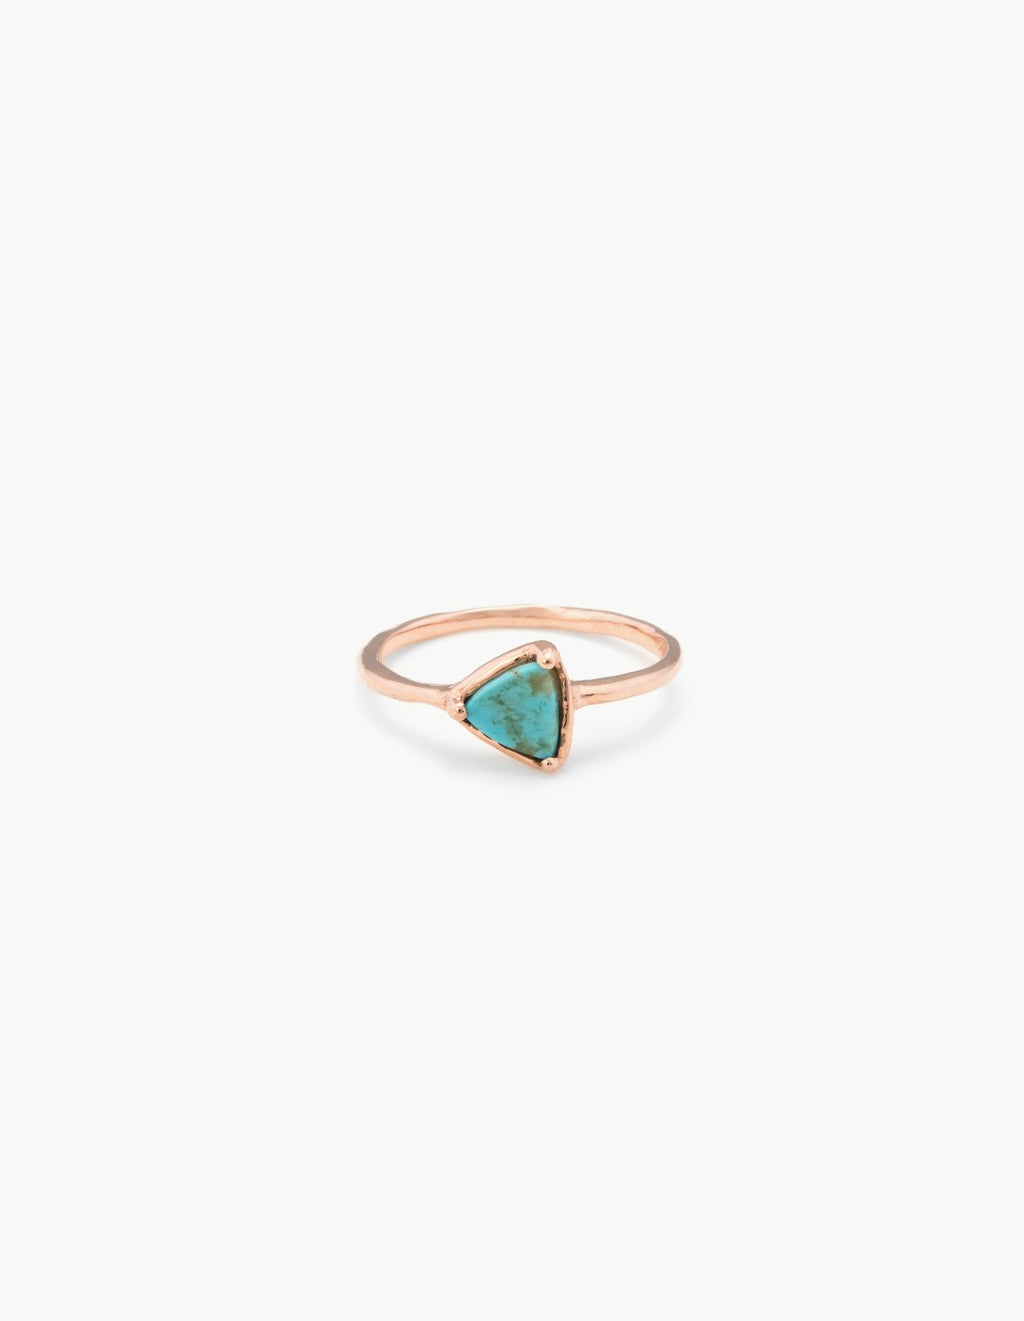 Turquoise Prism Ring - Dream Collective